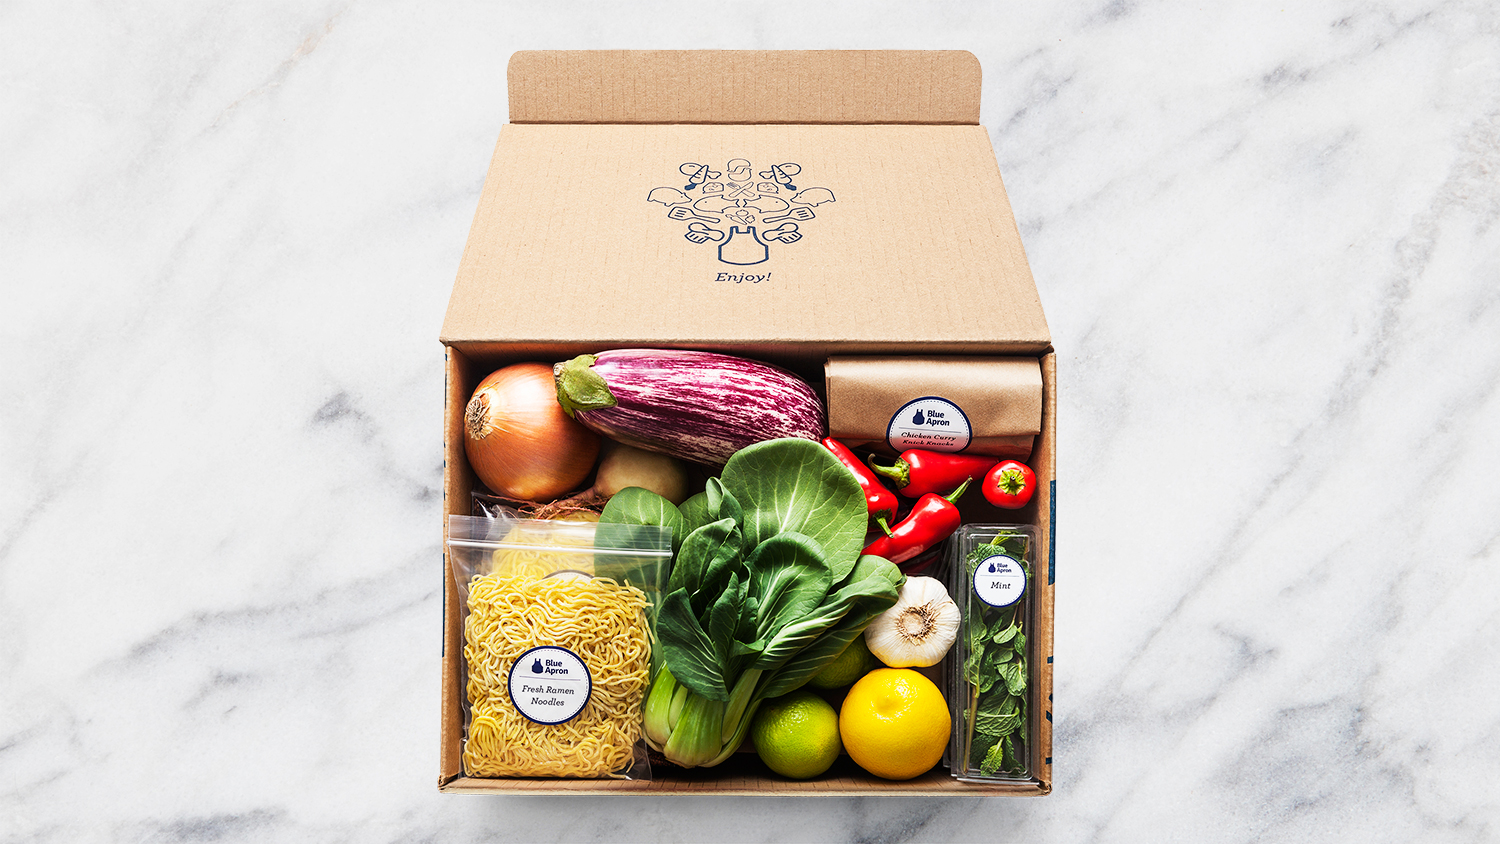 Blue Apron, the Popular Meal-Kit Delivery Service, Has Filed to Go Public